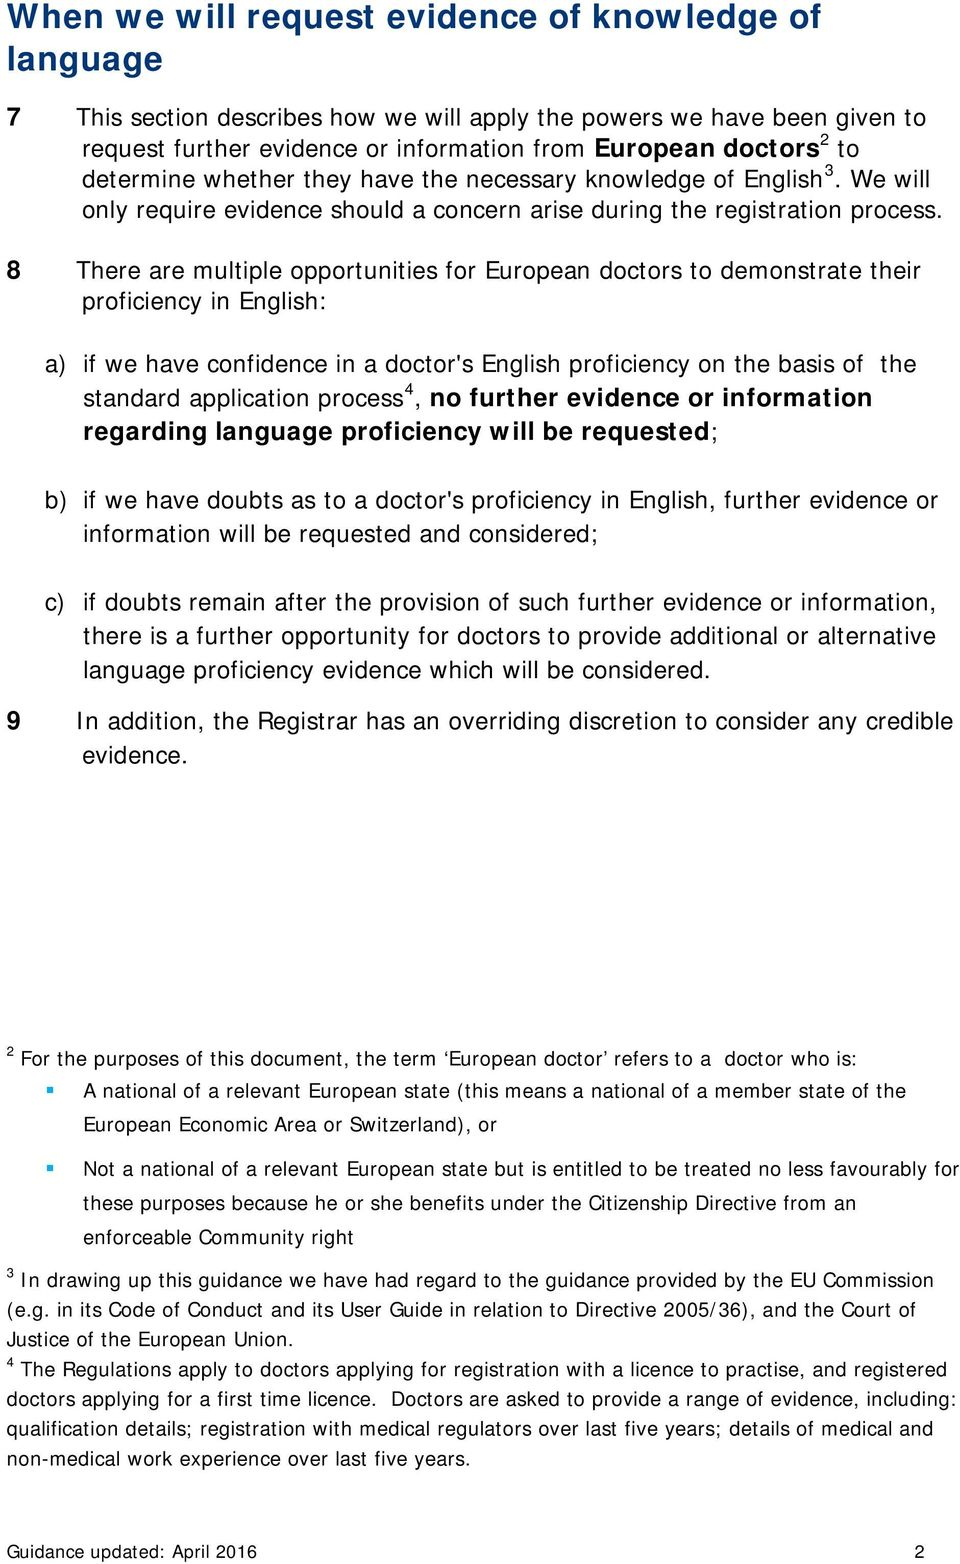 8 There are multiple opportunities for European doctors to demonstrate their proficiency in English: a) if we have confidence in a doctor's English proficiency on the basis of the standard